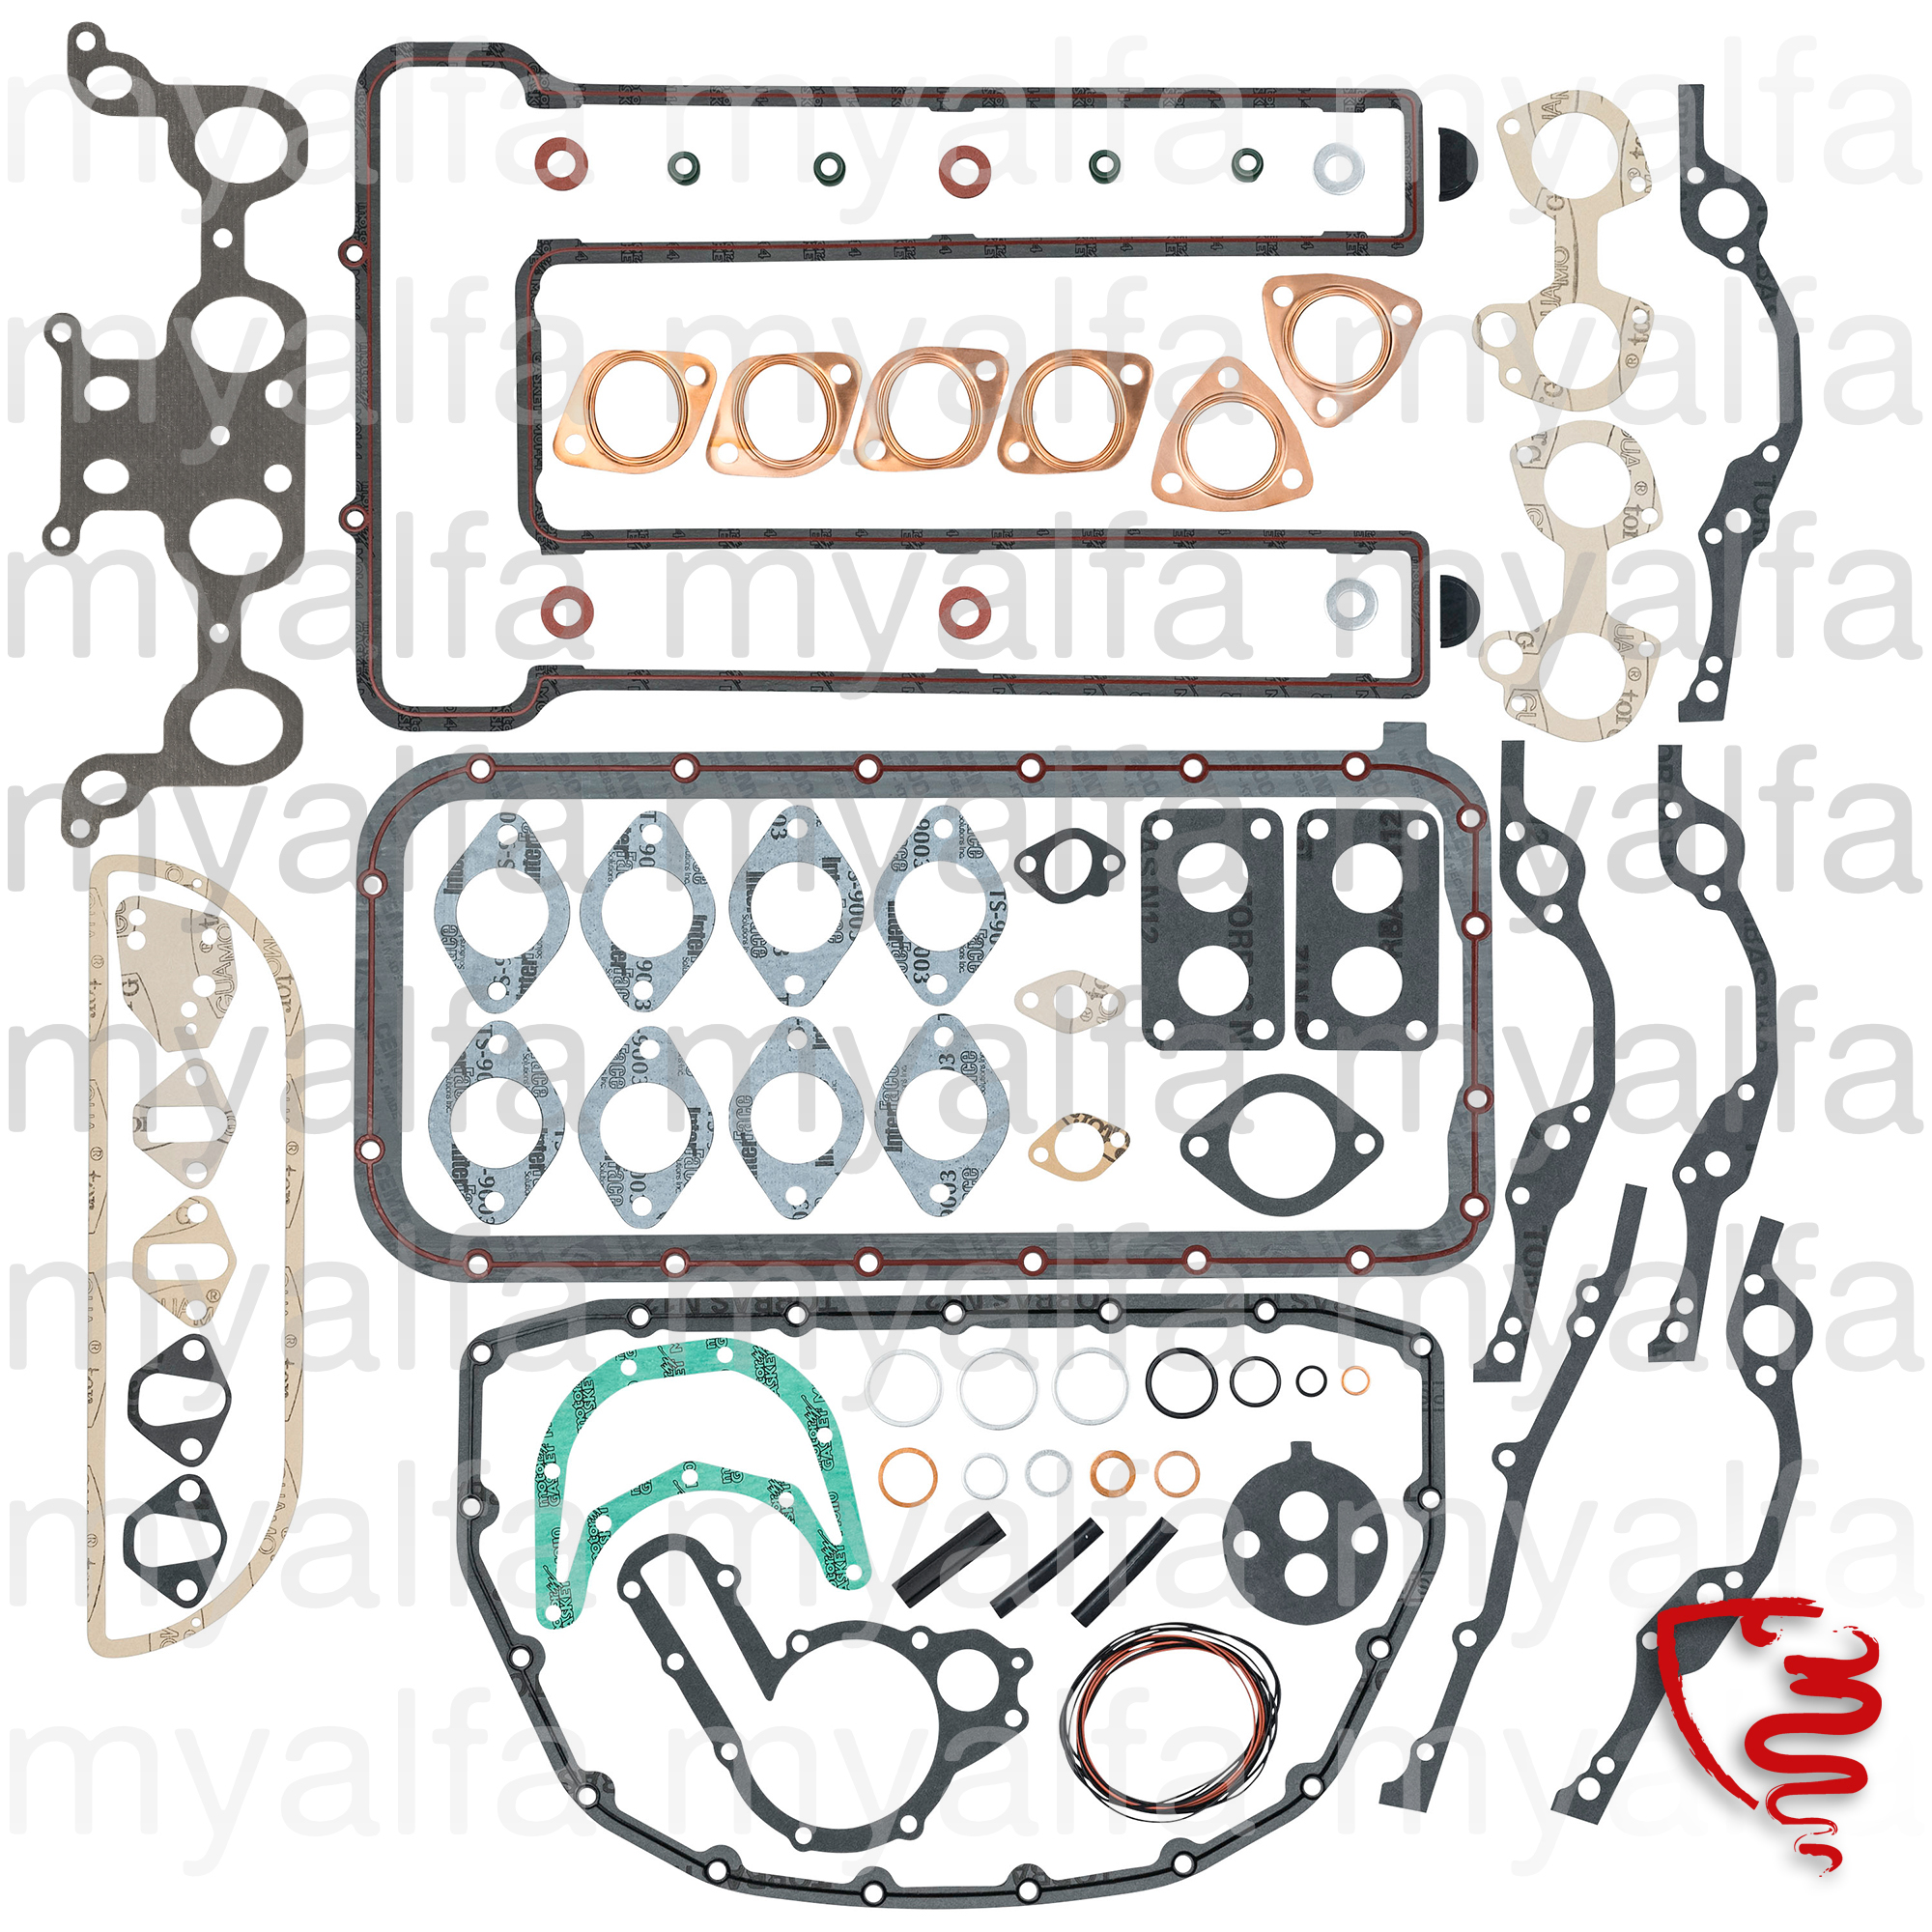 Playing together until 1968 1300-1600 without cylinder head gasket for 750/101, 105/115, Coupe, GTC, Junior, Engine, Engine Gaskets, Complete Gasket Sets